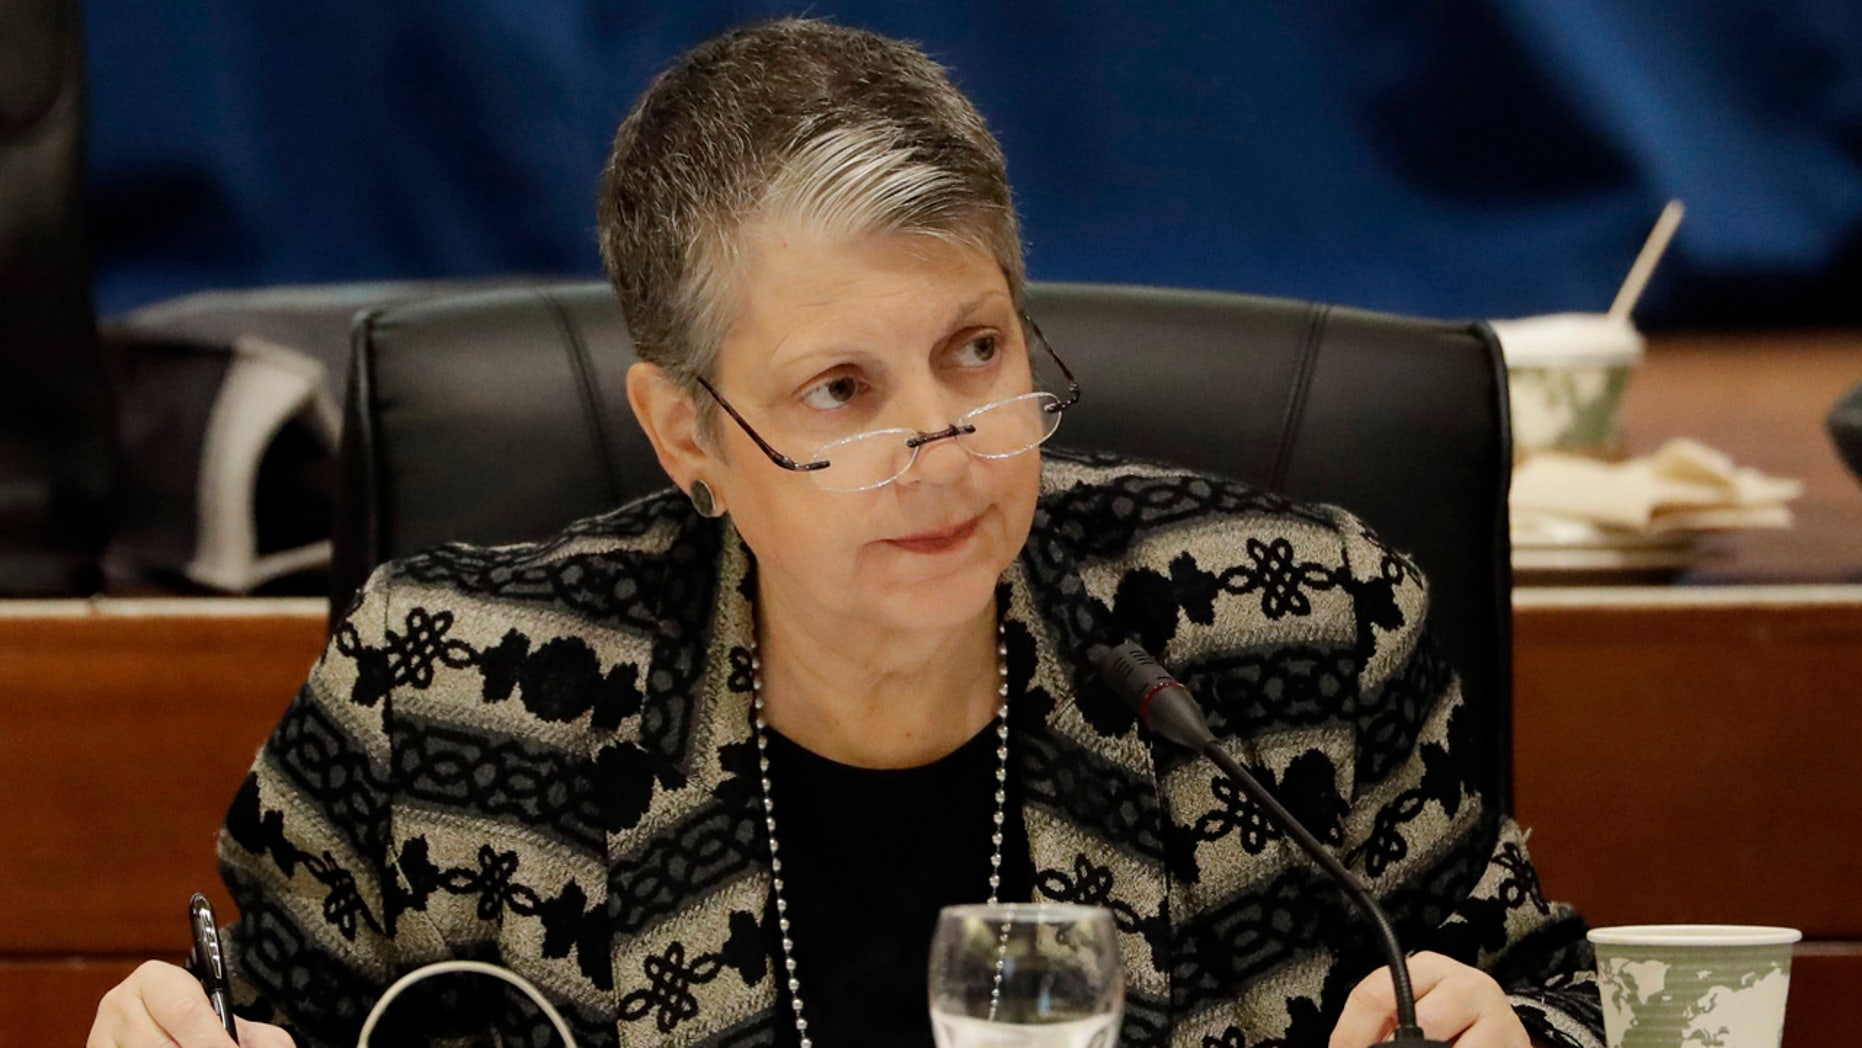 FILE - In this Wednesday, Jan. 25, 2017 file photo, University of California President Janet Napolitano attends a University of California Board of Regents meeting, in San Francisco.